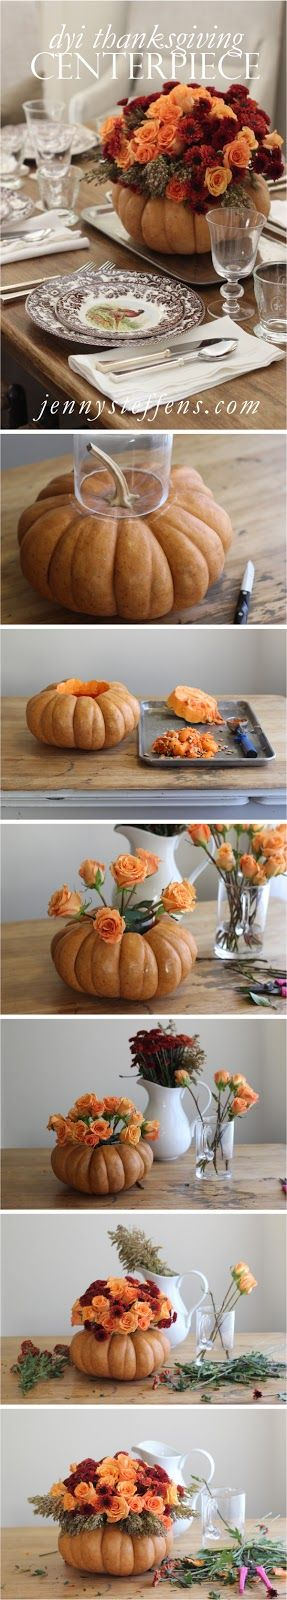 DIY Step-by-Step Rose & Mum Centerpiece in a Pumpkin for Thanksgiving